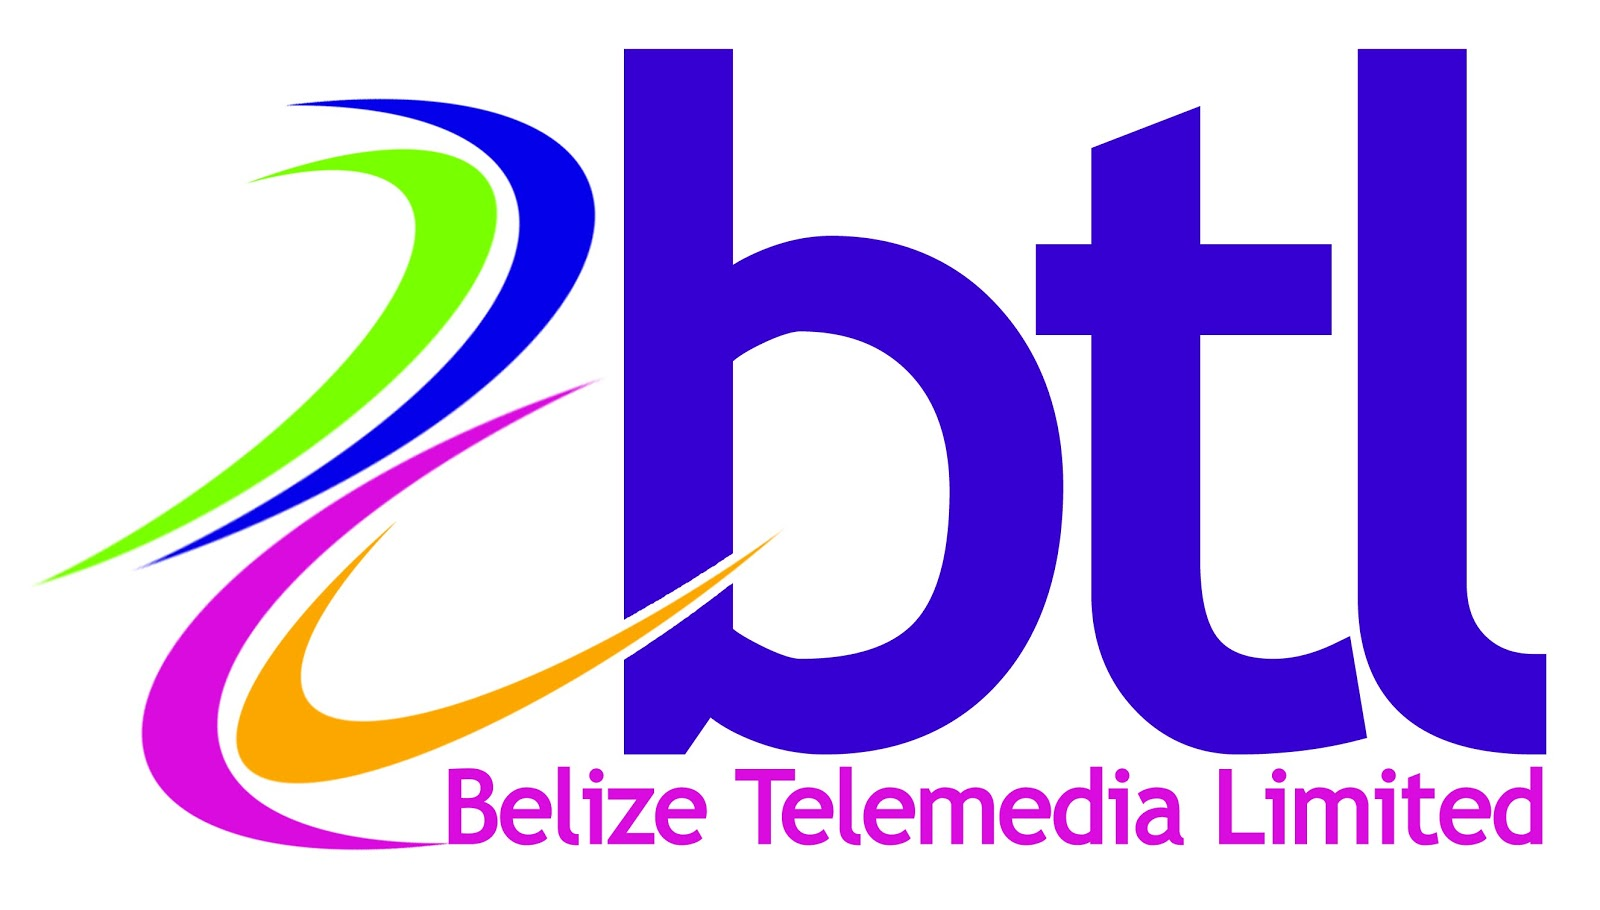 7 BTL Advertising Icon Images